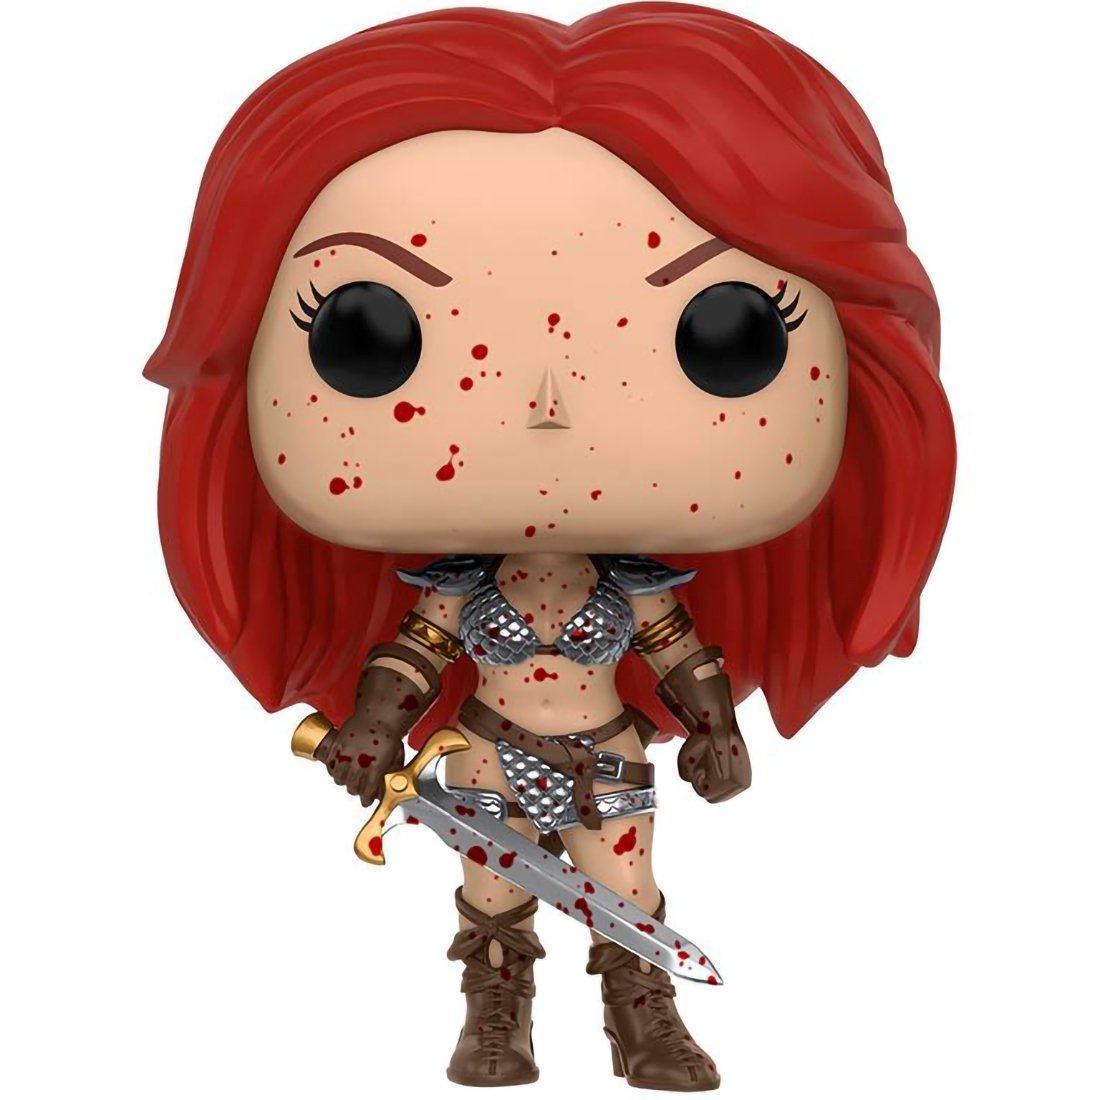 BCC9P12Y 12194 Heroes x Marvel Universe Vinyl Figure Funko Red Sonja 1 Official Marvel Trading Card Bundle PX Exclusive POP